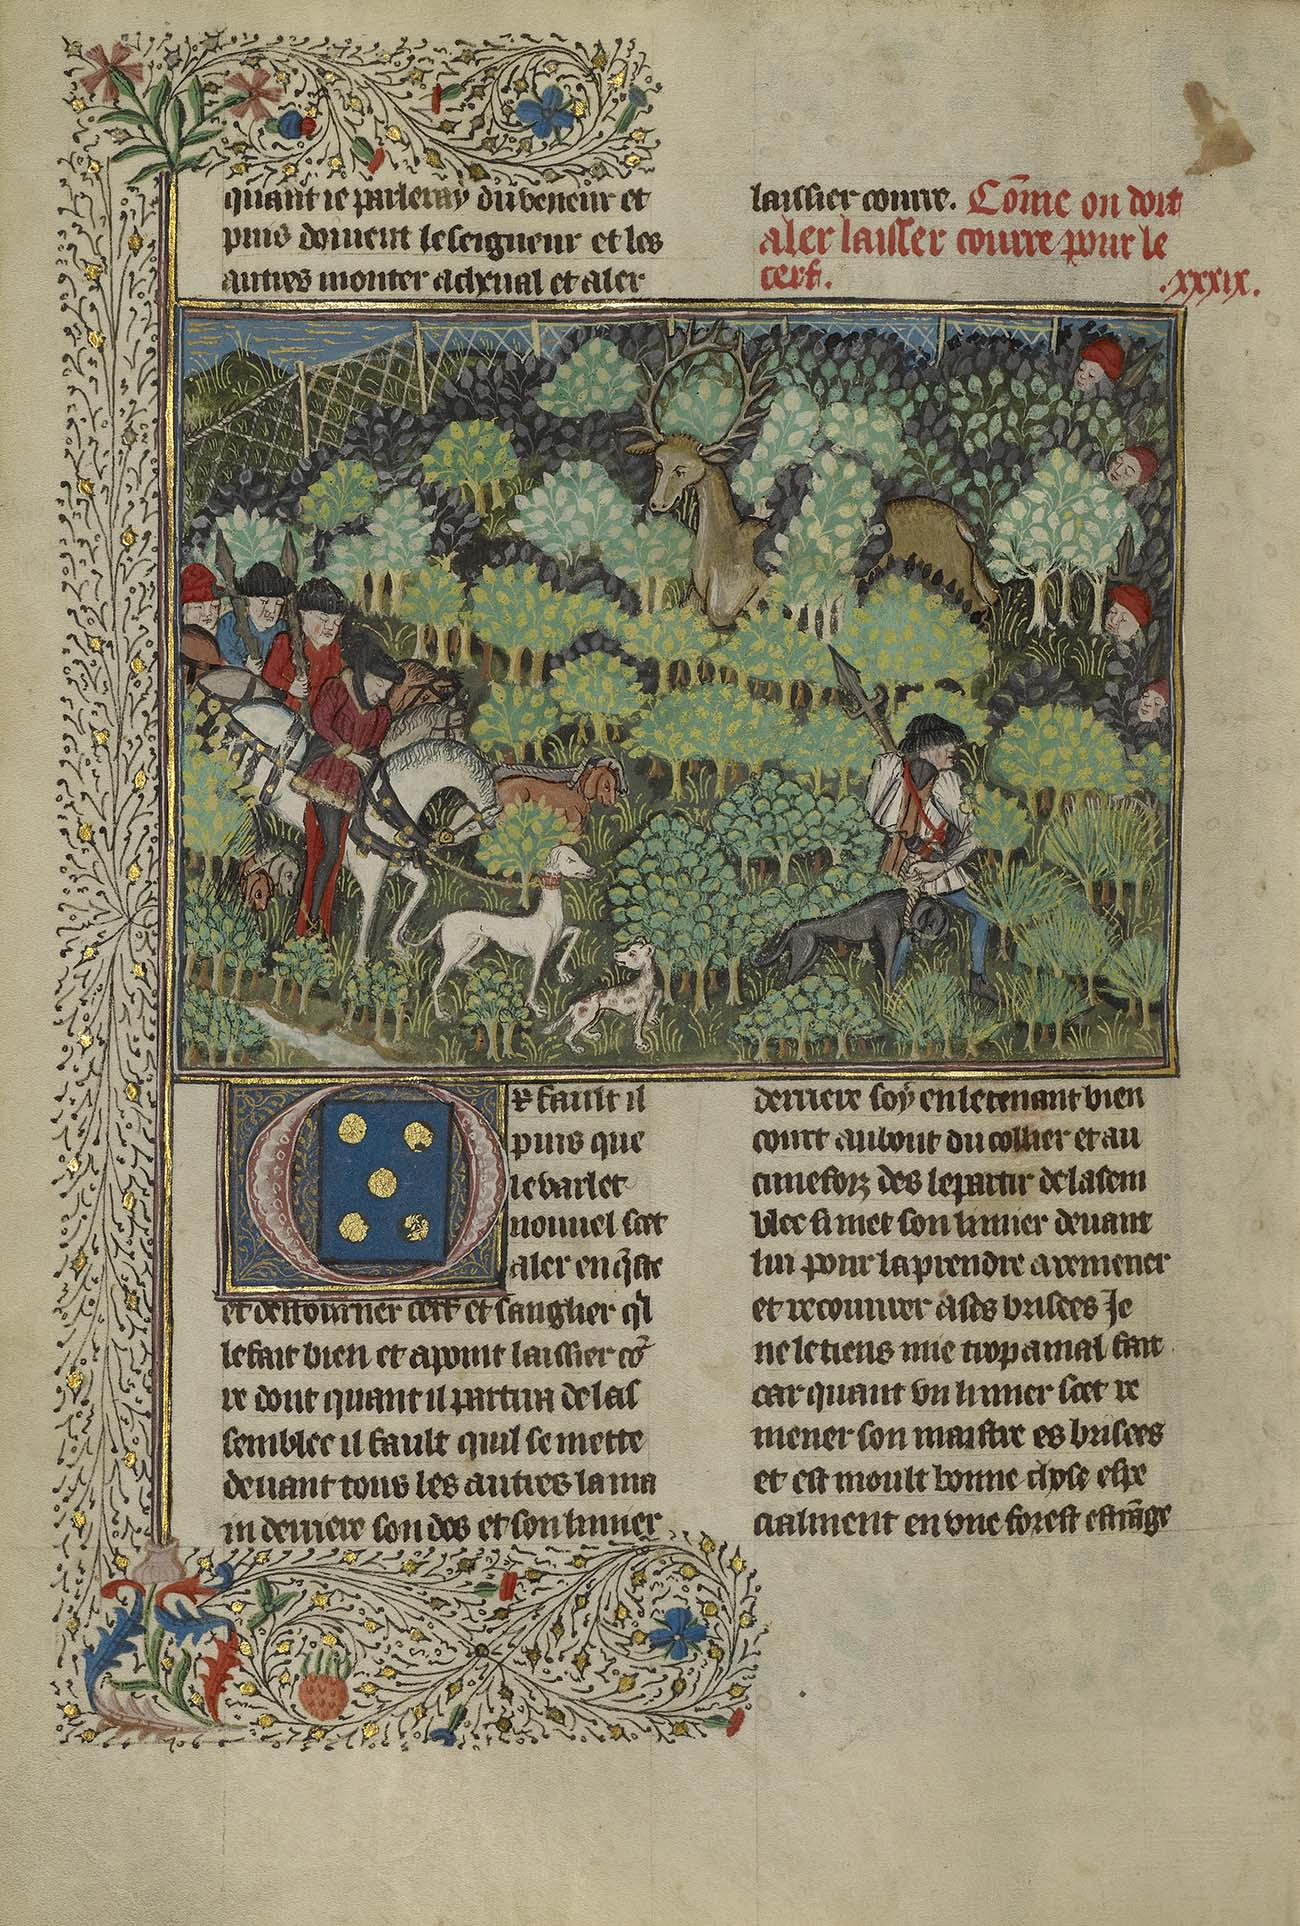 Page from a manuscript featuring animals and hunters in a lush green forest.